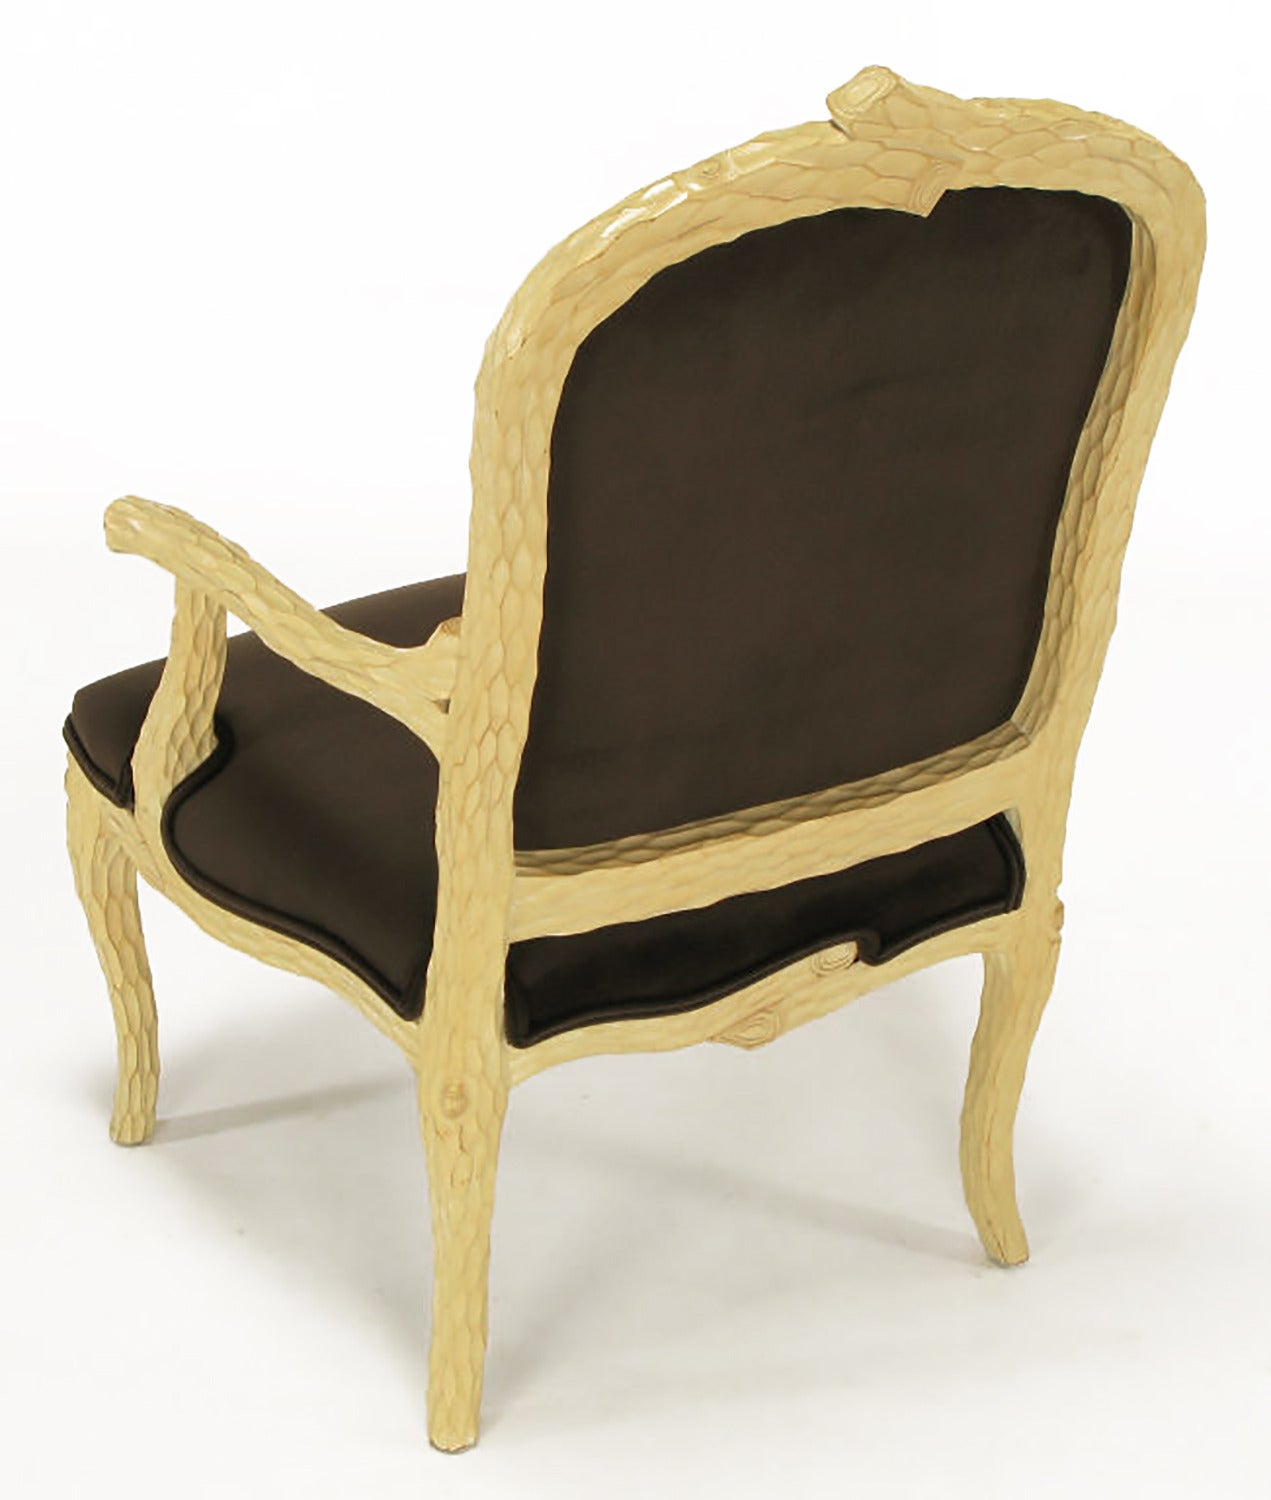 Pair of faux bois and velvet louis xv style fauteuils for sale at 1stdibs - Fauteuil style louis xv ...